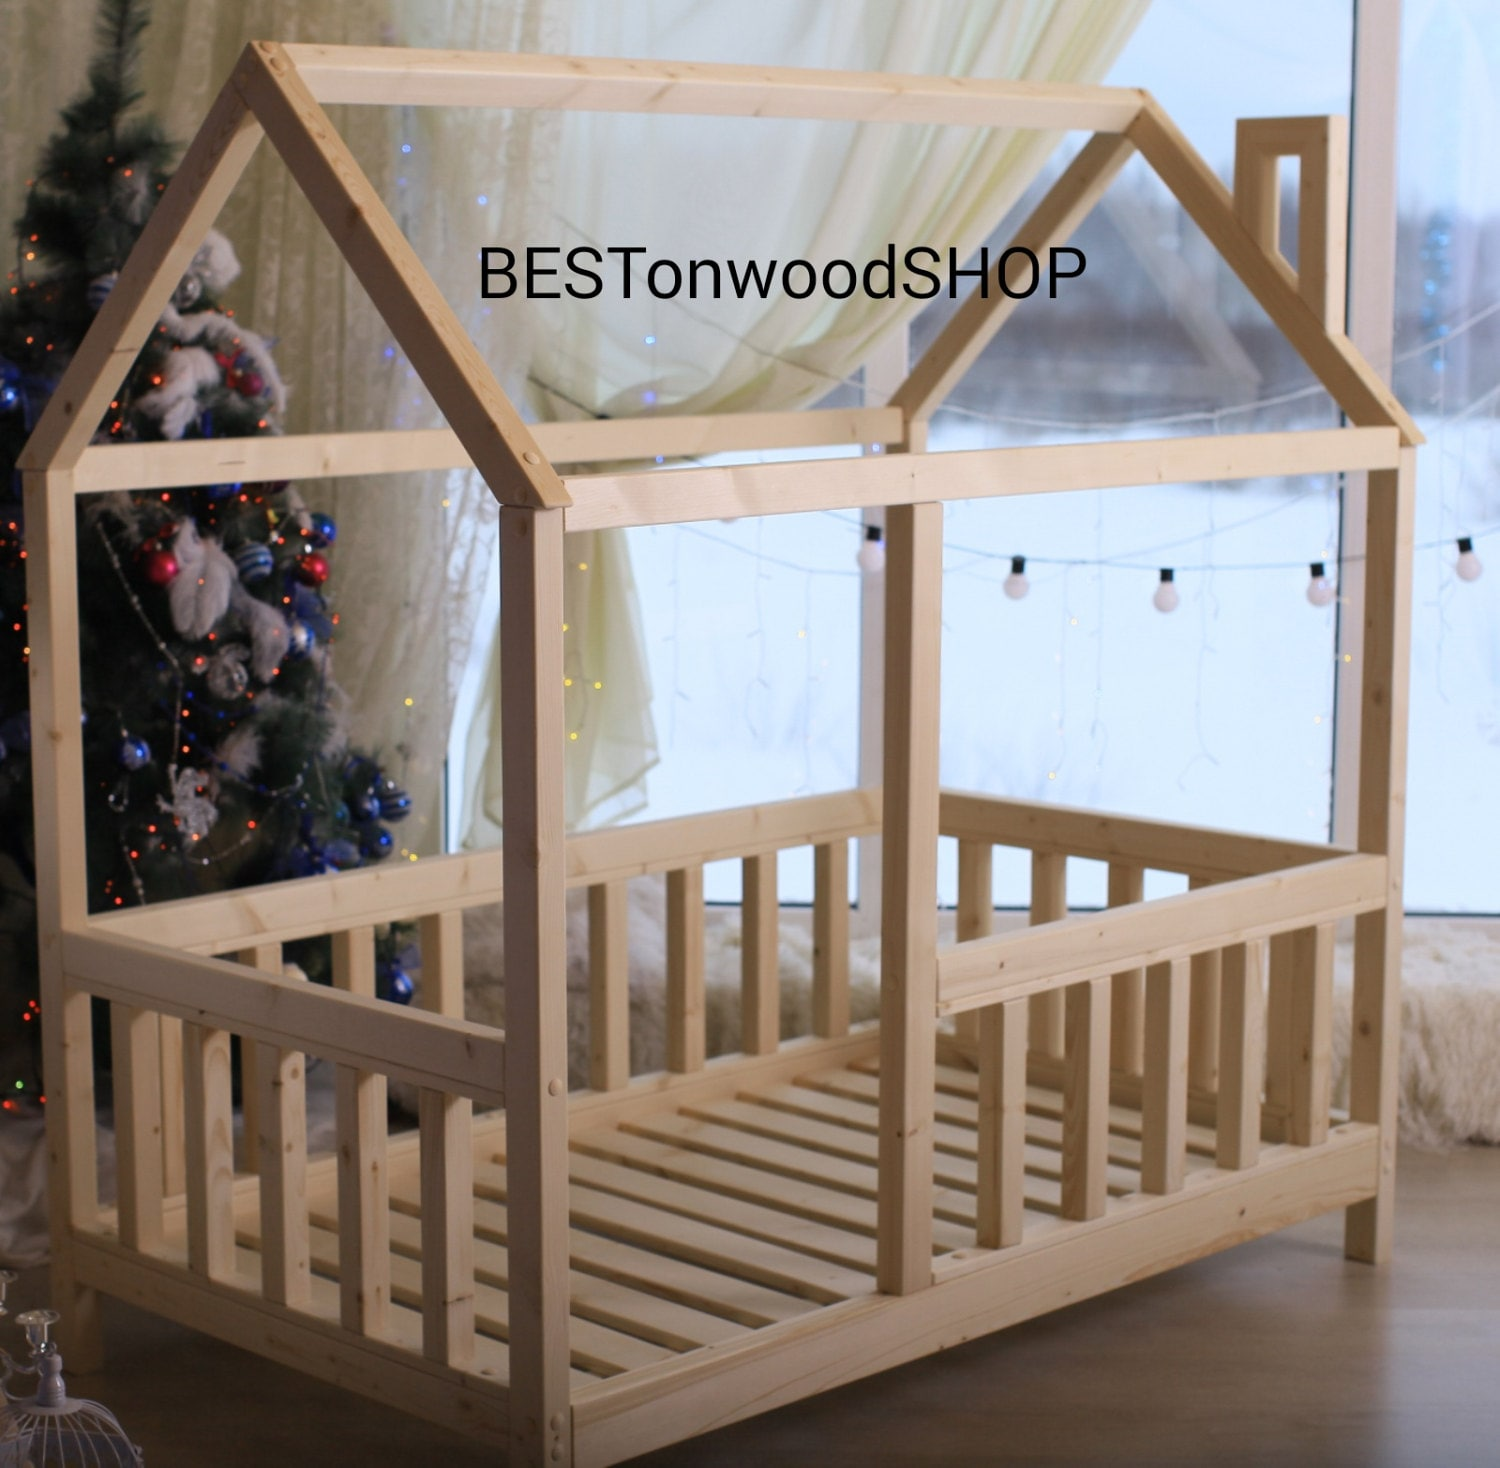 160708090cm. House Bed Tent Bed Wooden House Wood